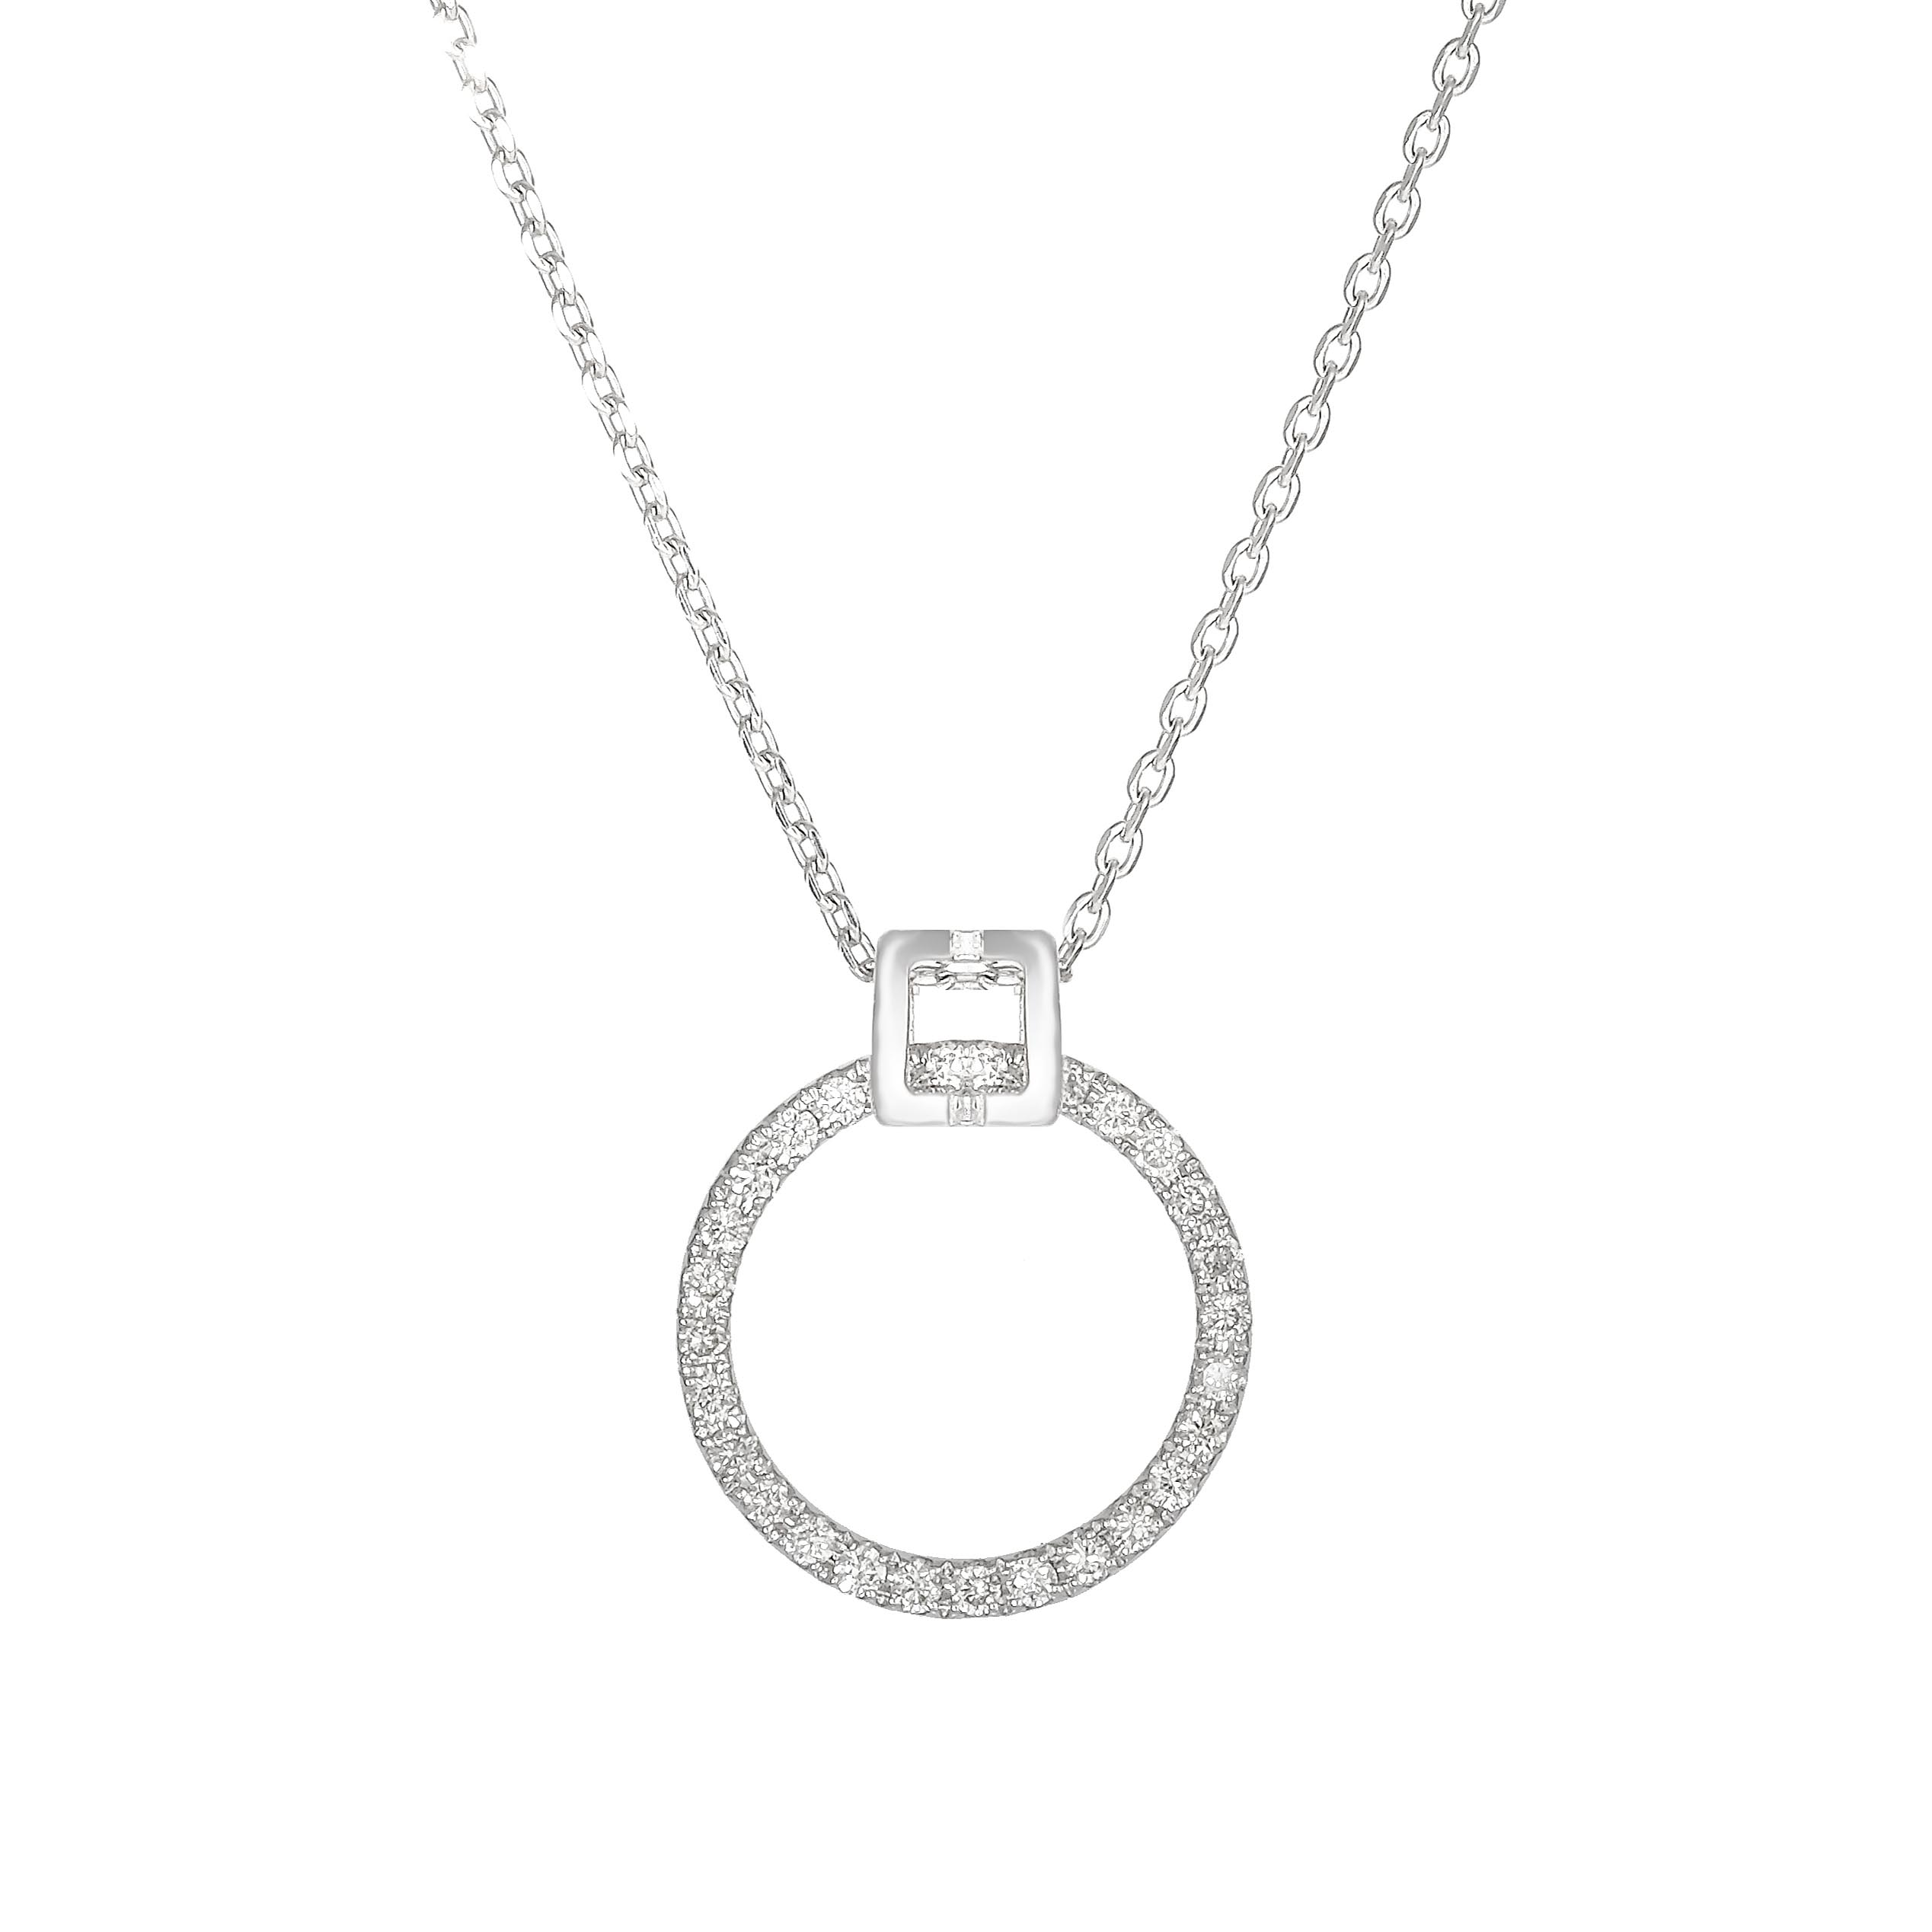 Soleluna Eternal Love Diamond Necklace